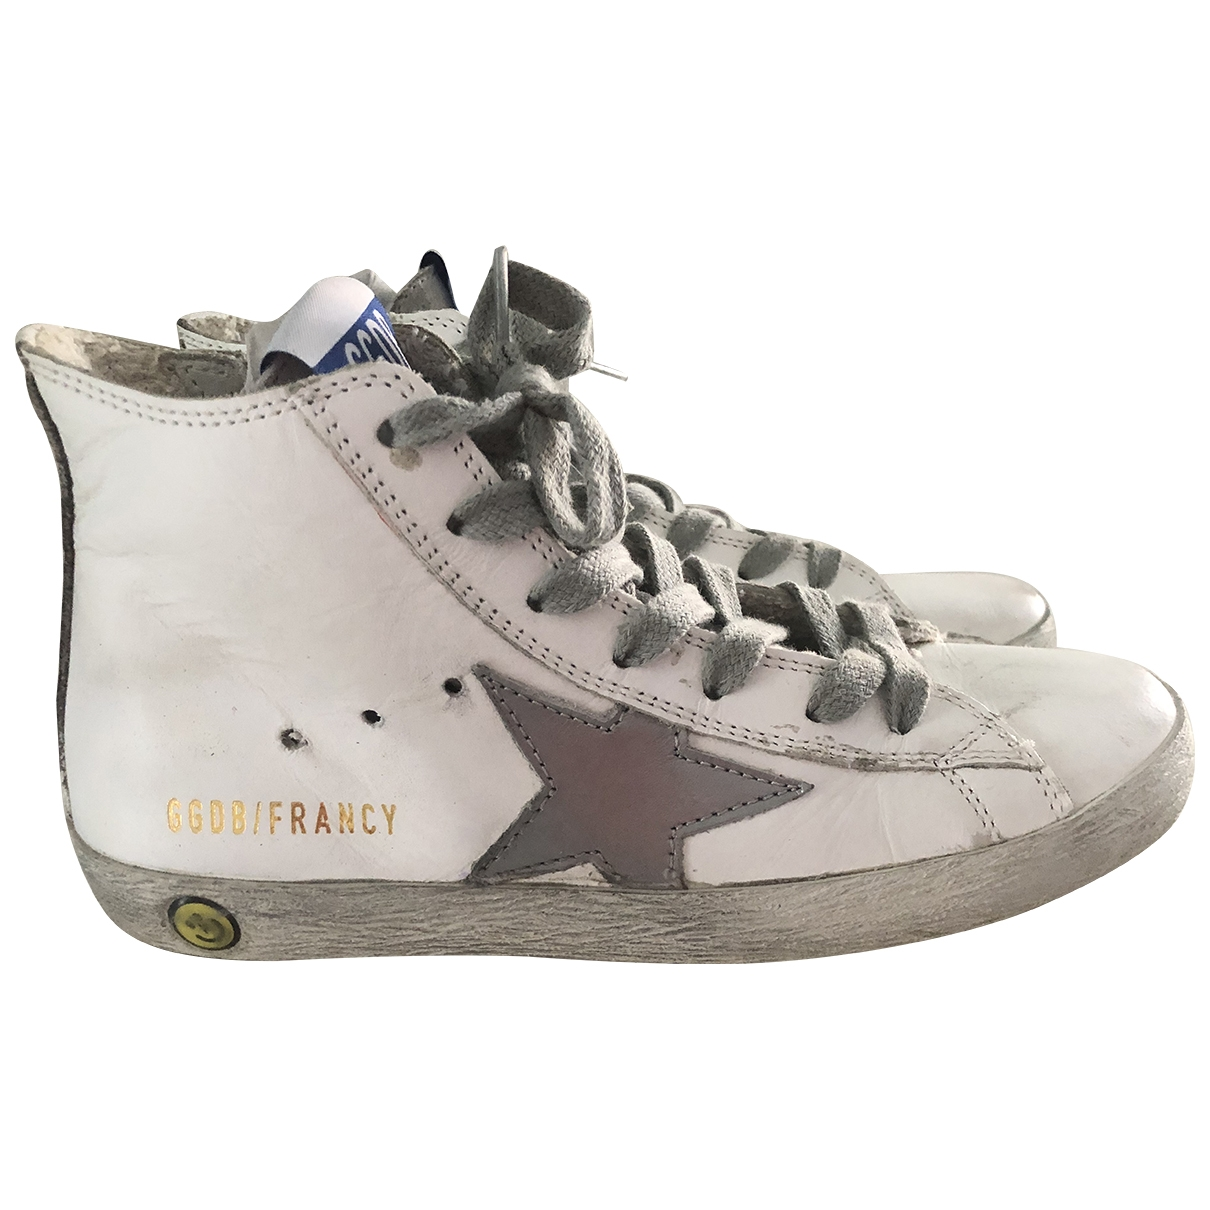 Golden Goose Francy White Leather Trainers for Kids 33 EU